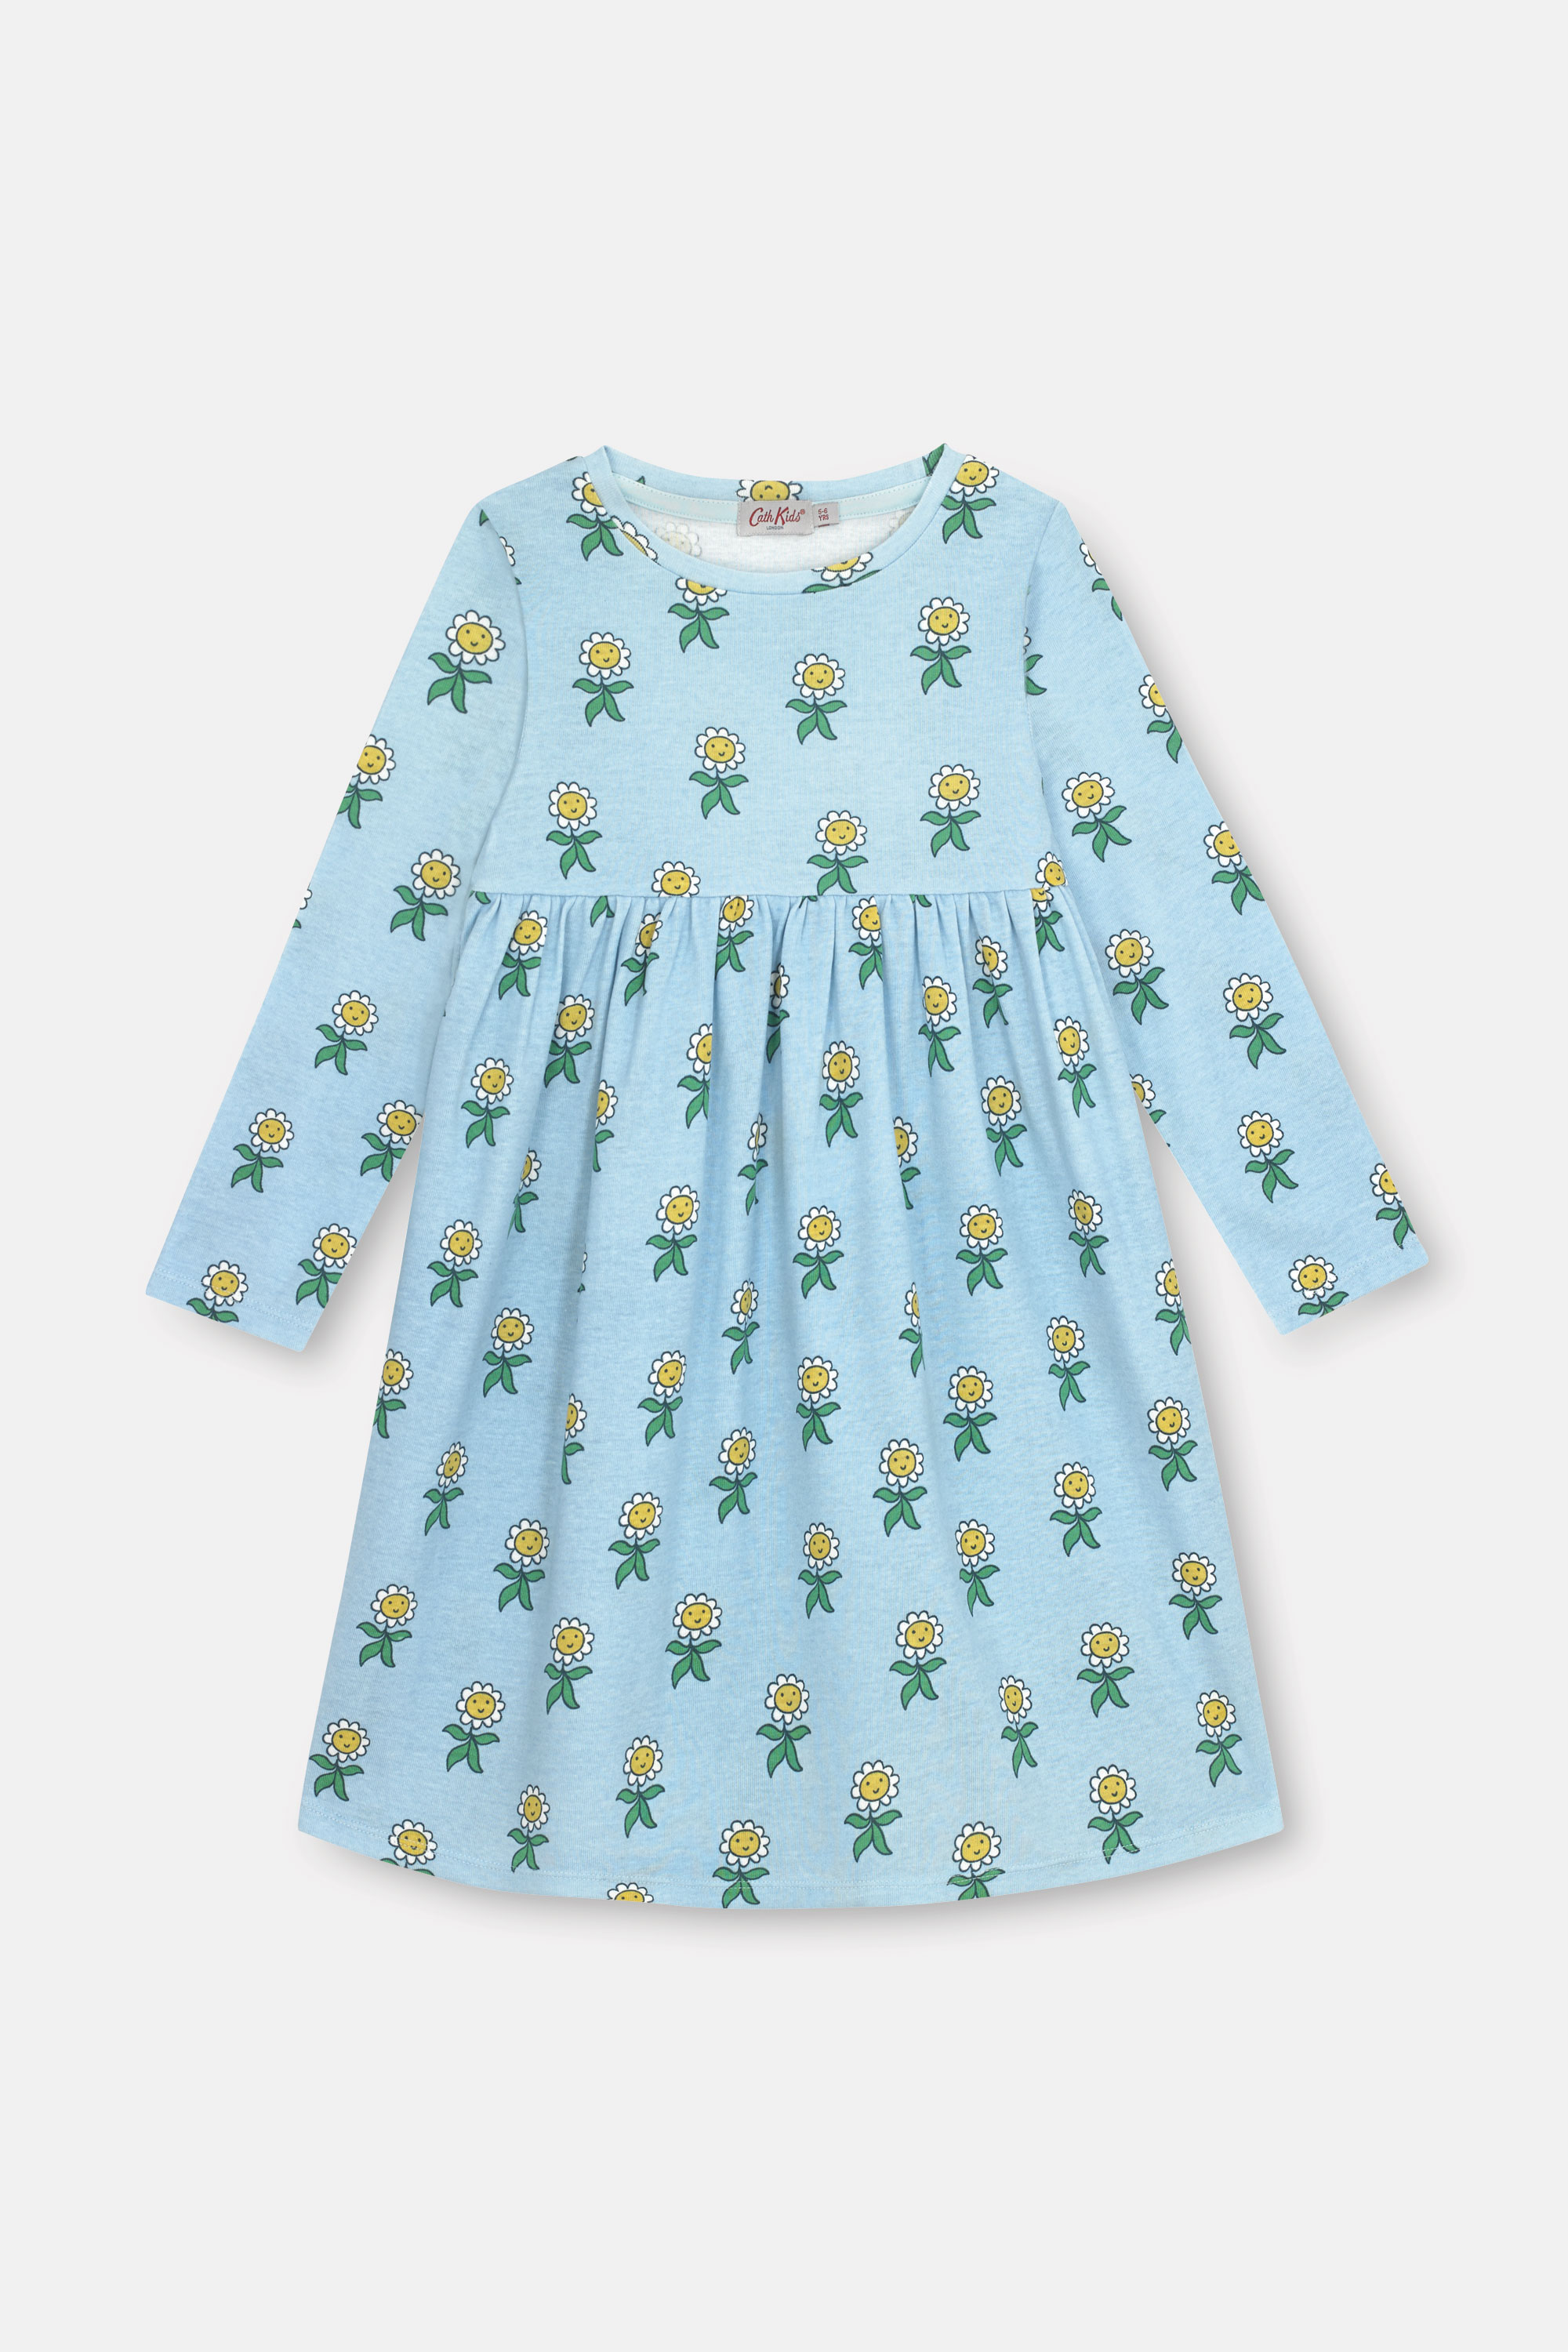 Cath Kidston Petal Flowers Long Sleeve Everyday Dress in Blue Grey, 7-8 yr